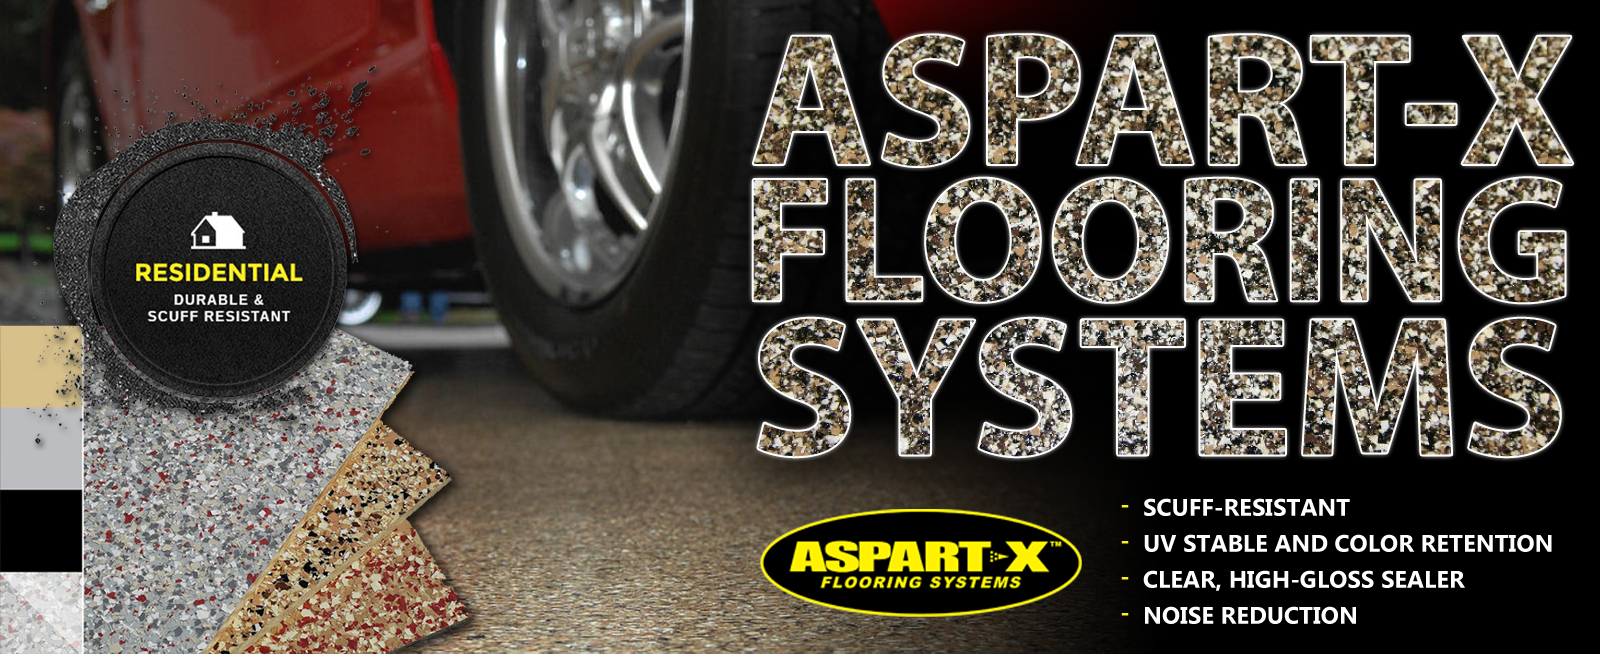 ASPART-X Flooring Systems